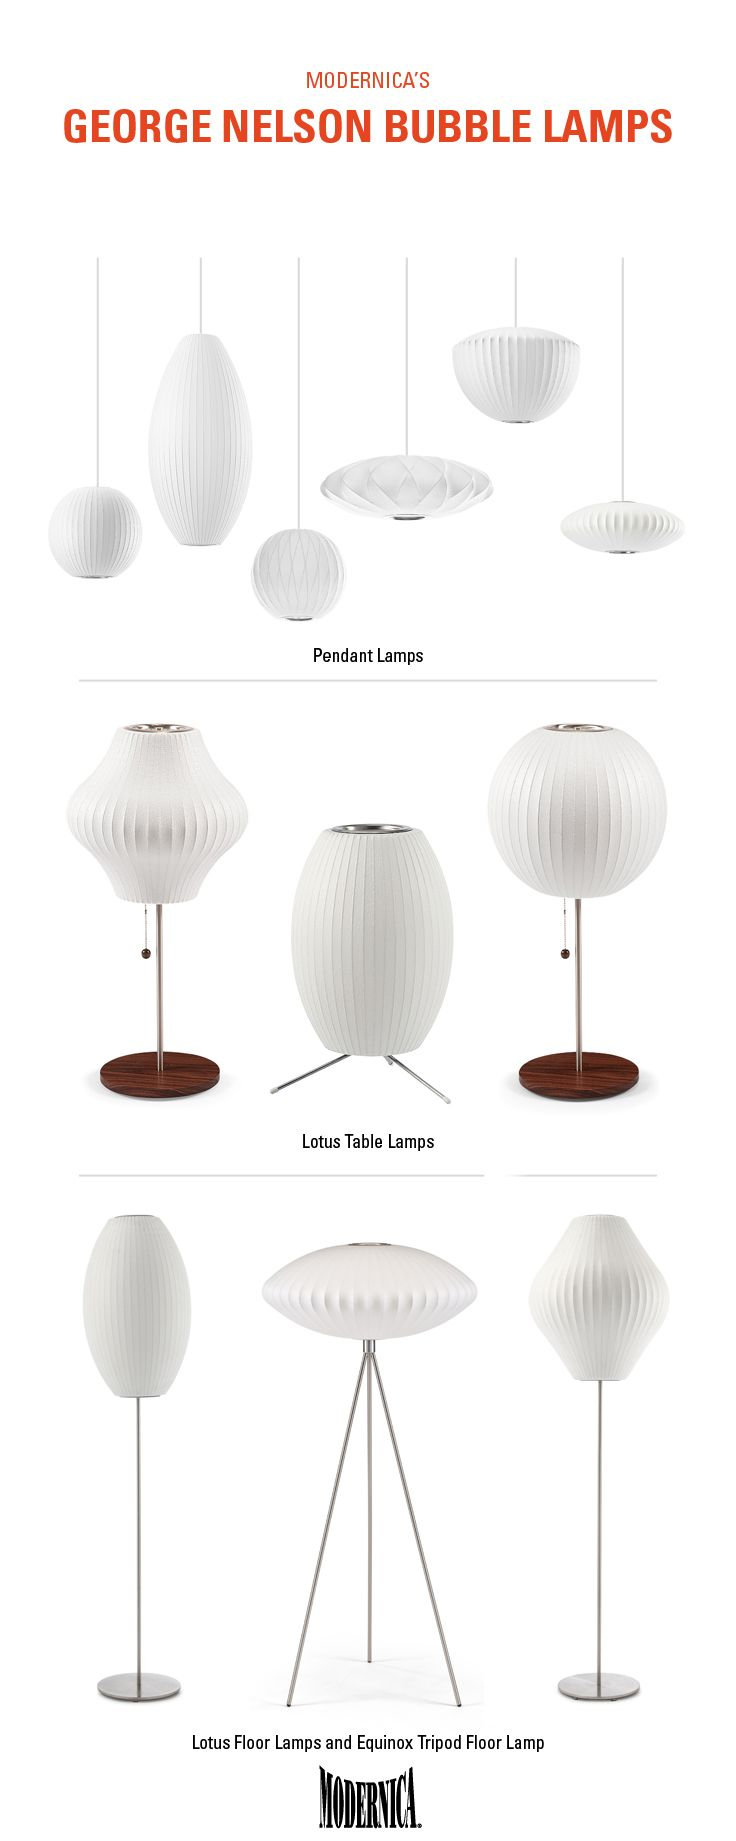 Table lamp harp sizes - The George Nelson Bubble Lamp Collection Pendants Table Lamps And Floor Lamps Available